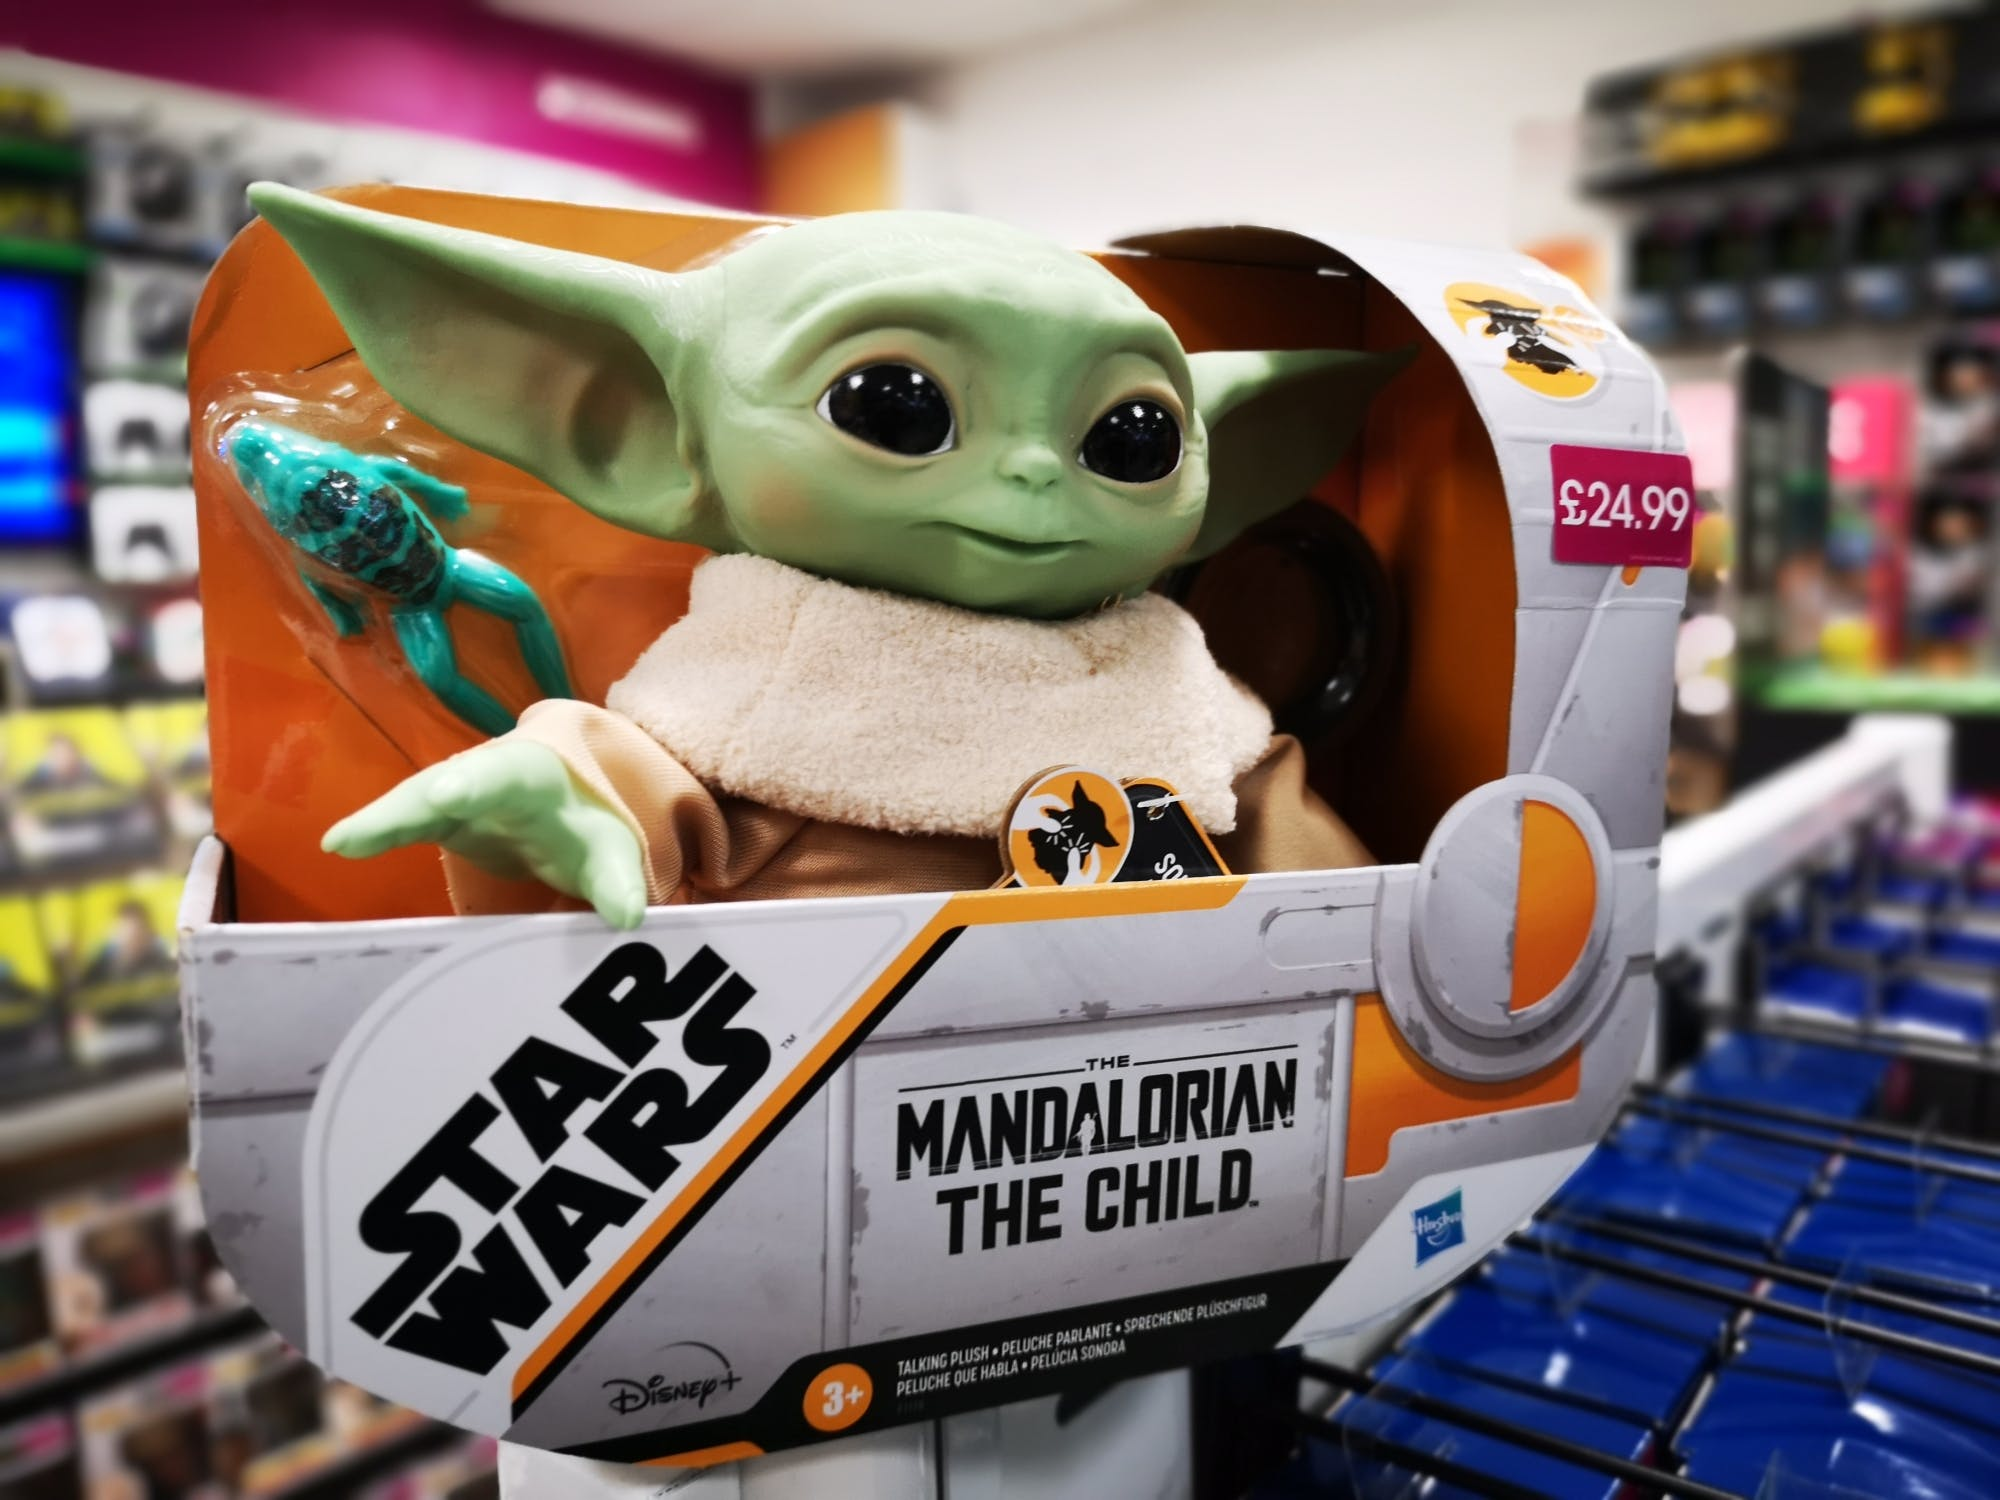 This gift will be a real asset to anyone - get it? For The Madalorian fans...'Baby Yoda' is cuddly , but tough and it talks. Get it before it goes £24.99